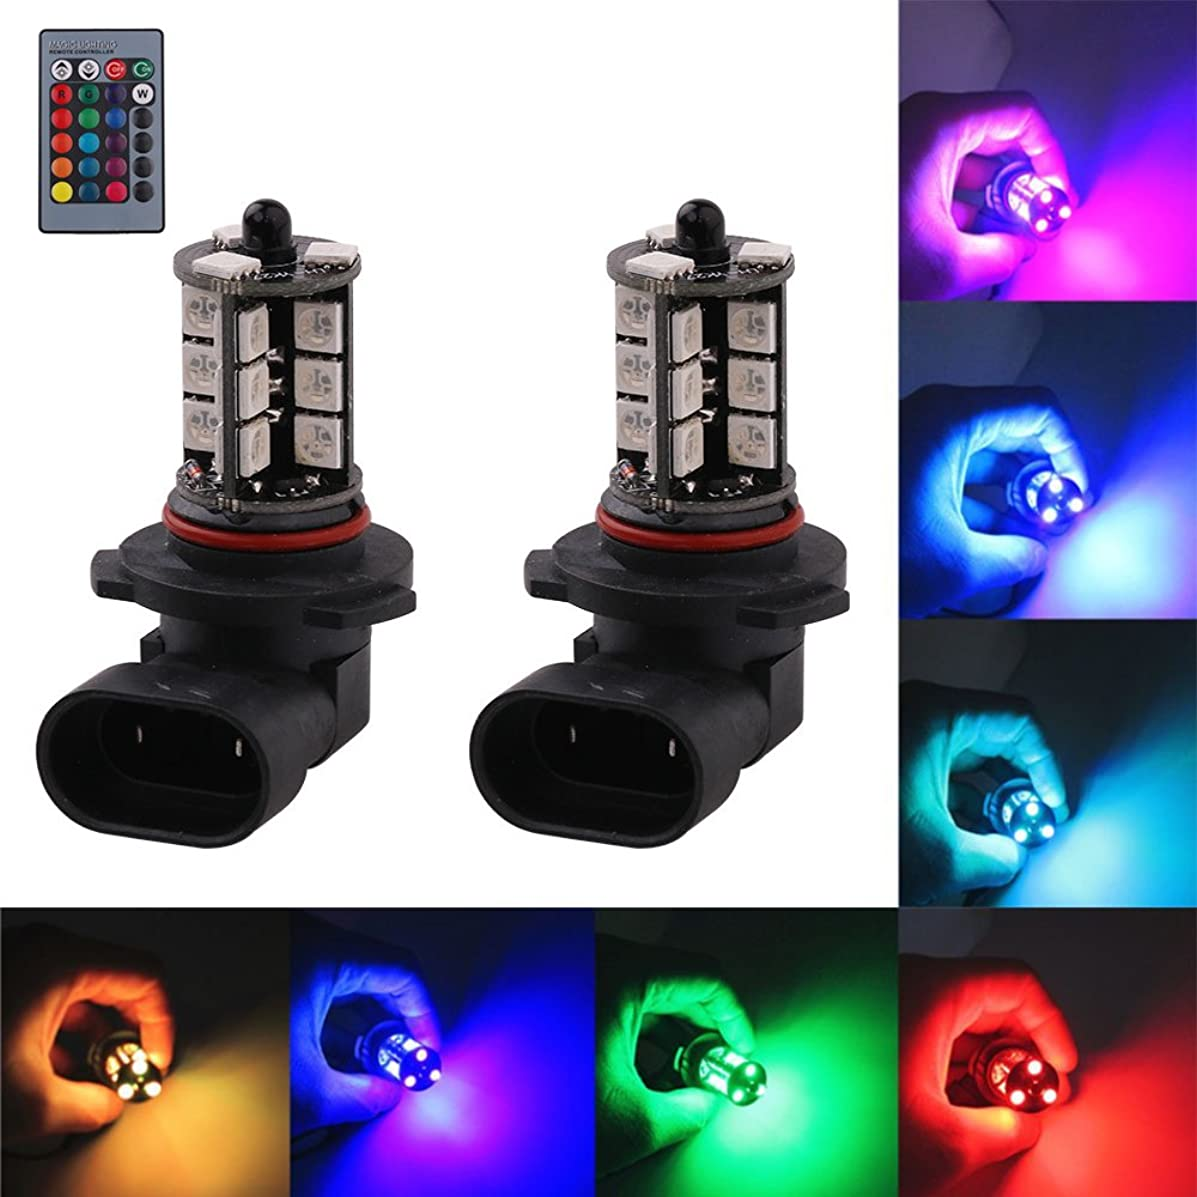 1797 9006 HB4 LED RGB Fog Lights Bulb Amber Yellow White Multicolor 16 Color Changing Switch Kit Strobe Lamp Bulbs for Car Trucks Remote Control Switch Error Free Plug and Play 12V 5050SMD Replacement